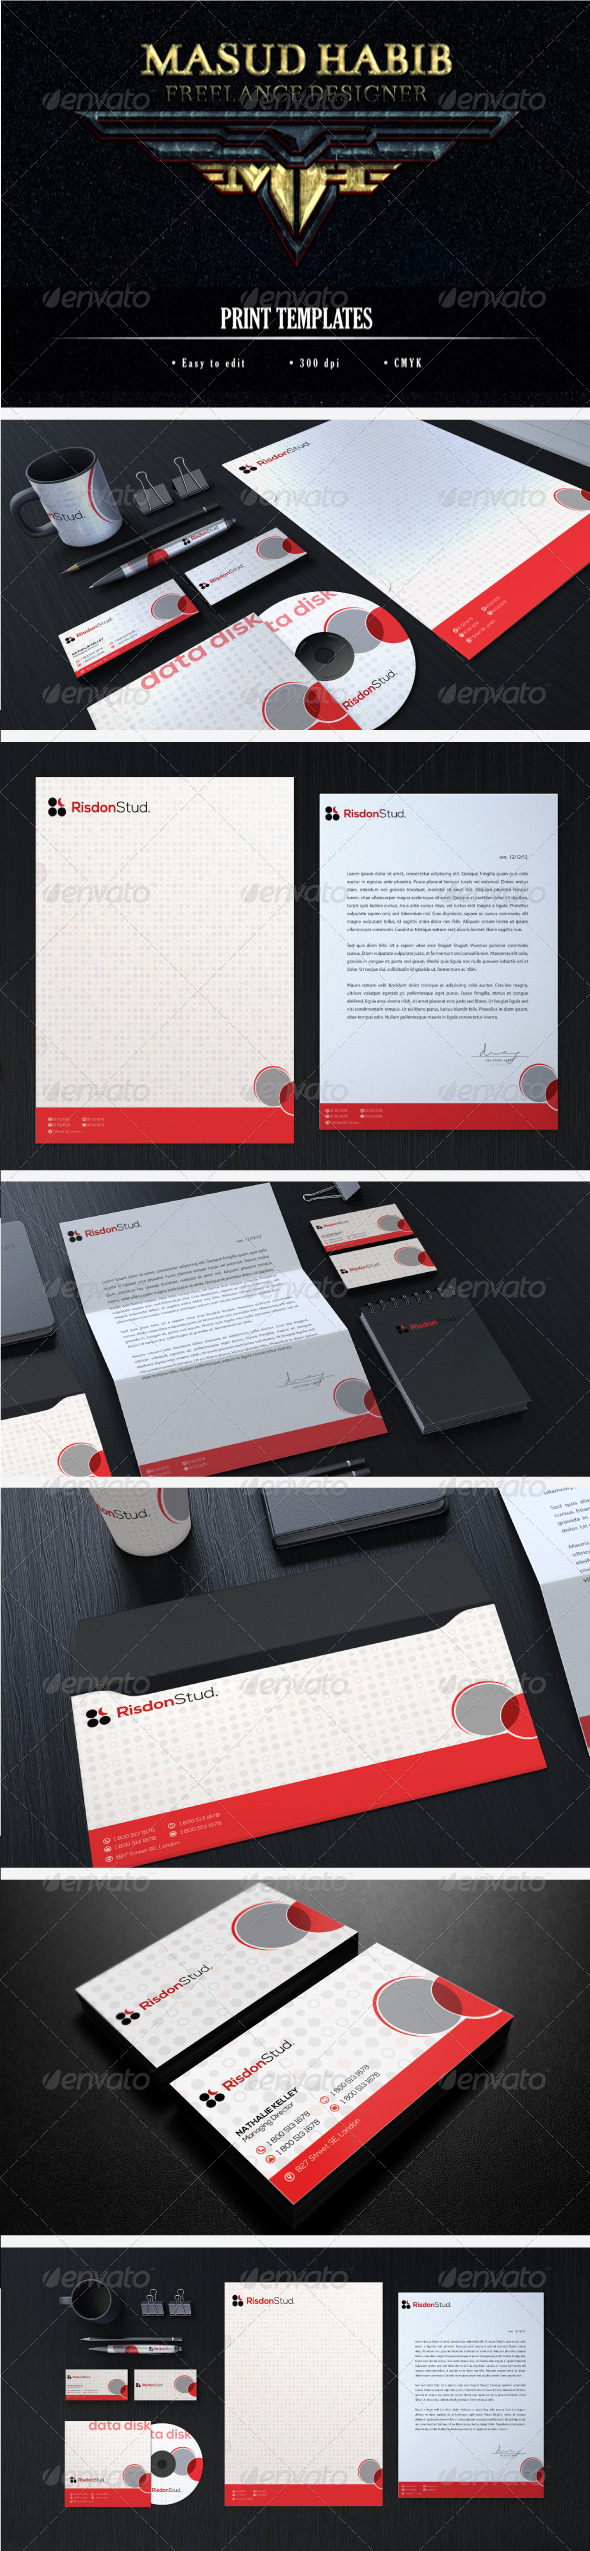 Creative Corporate Identity 18 - Stationery Print Templates